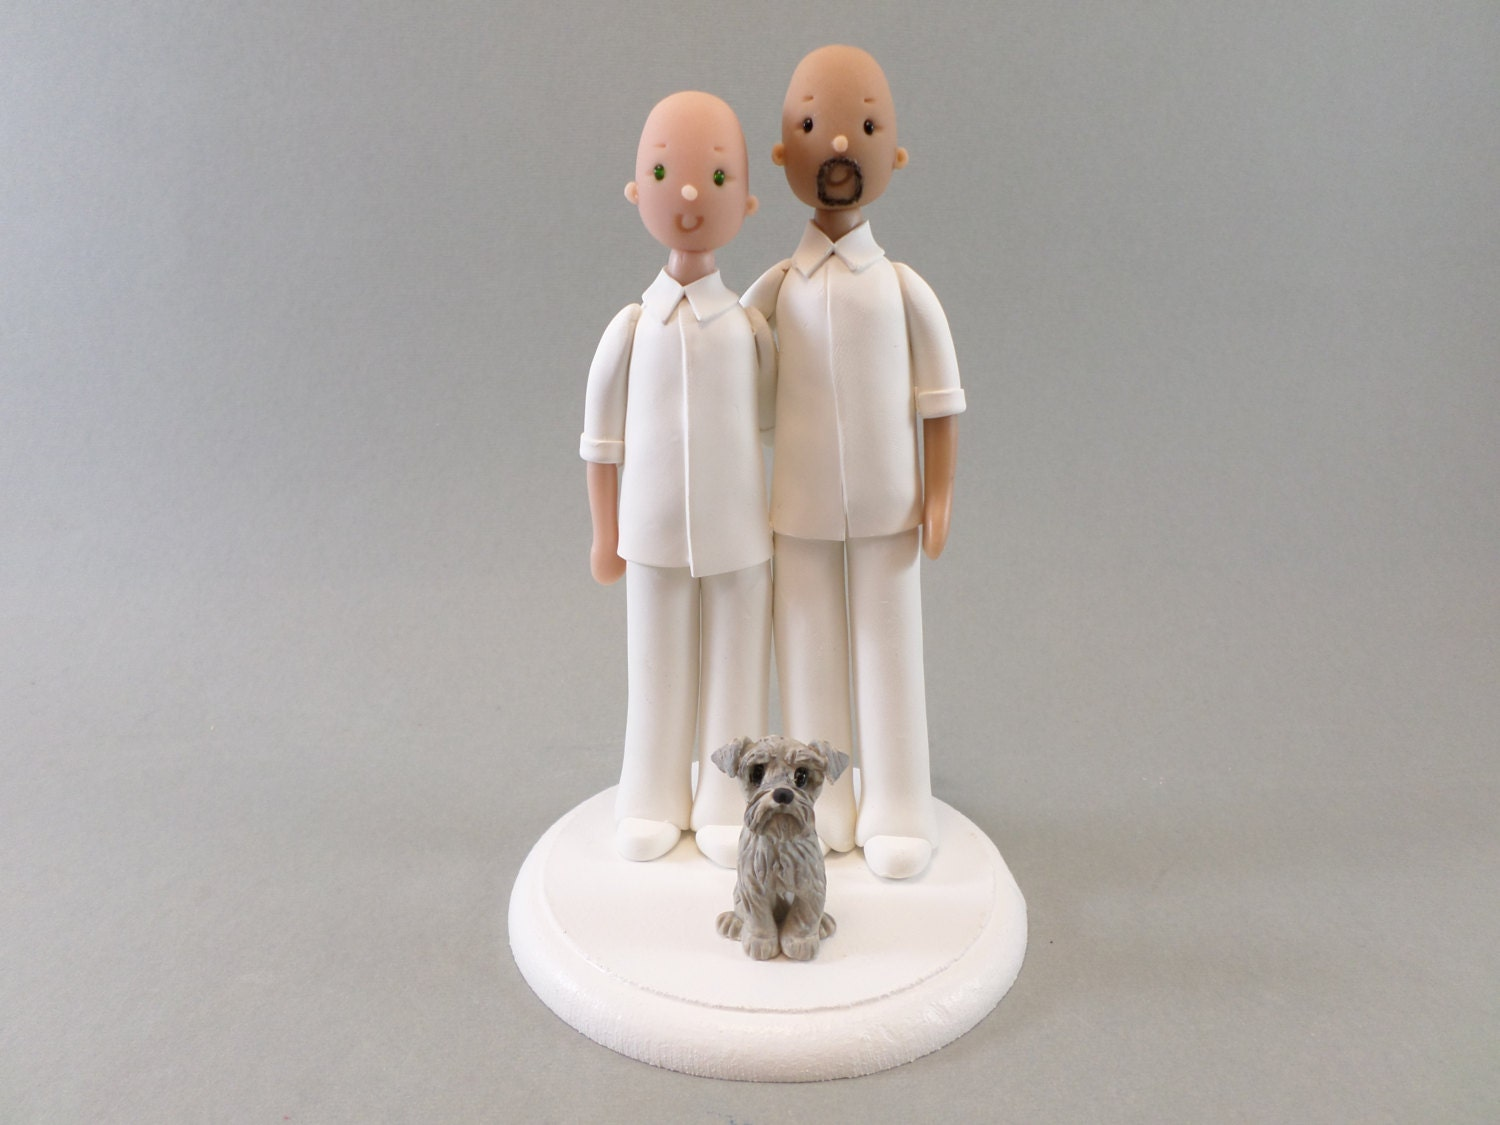 Cake Toppers Uk Next Day Delivery : Personalized Same Sex Wedding Cake Topper